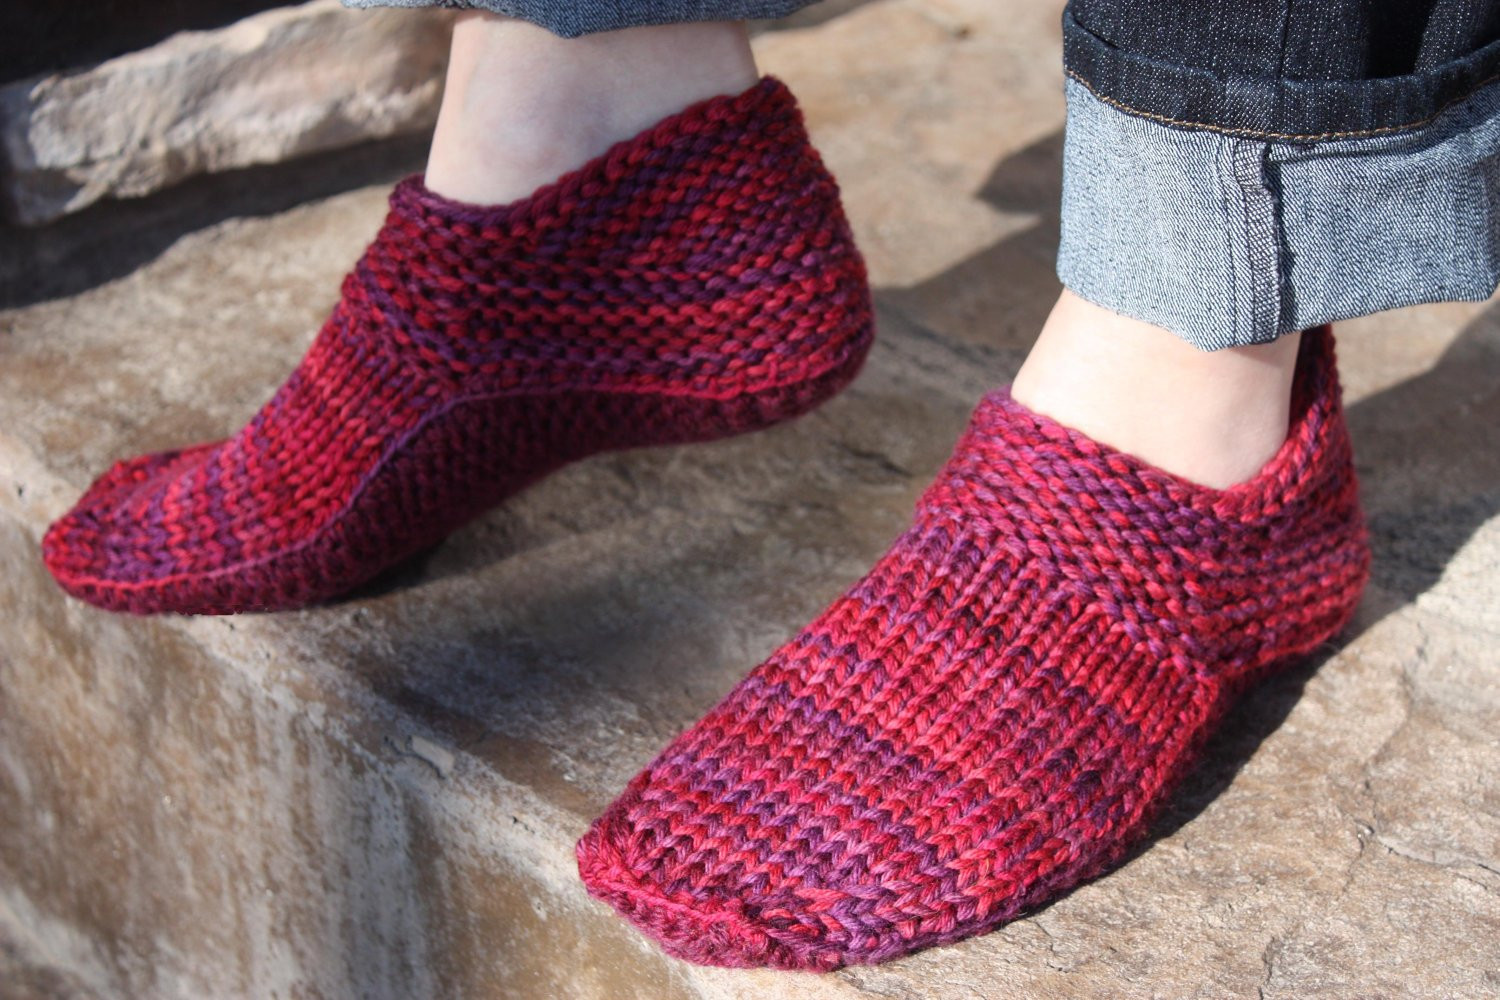 Knitted Slippers Best Of Options Slippers Pattern Knit Knit W Crochet Plus Felting Of New 42 Photos Knitted Slippers